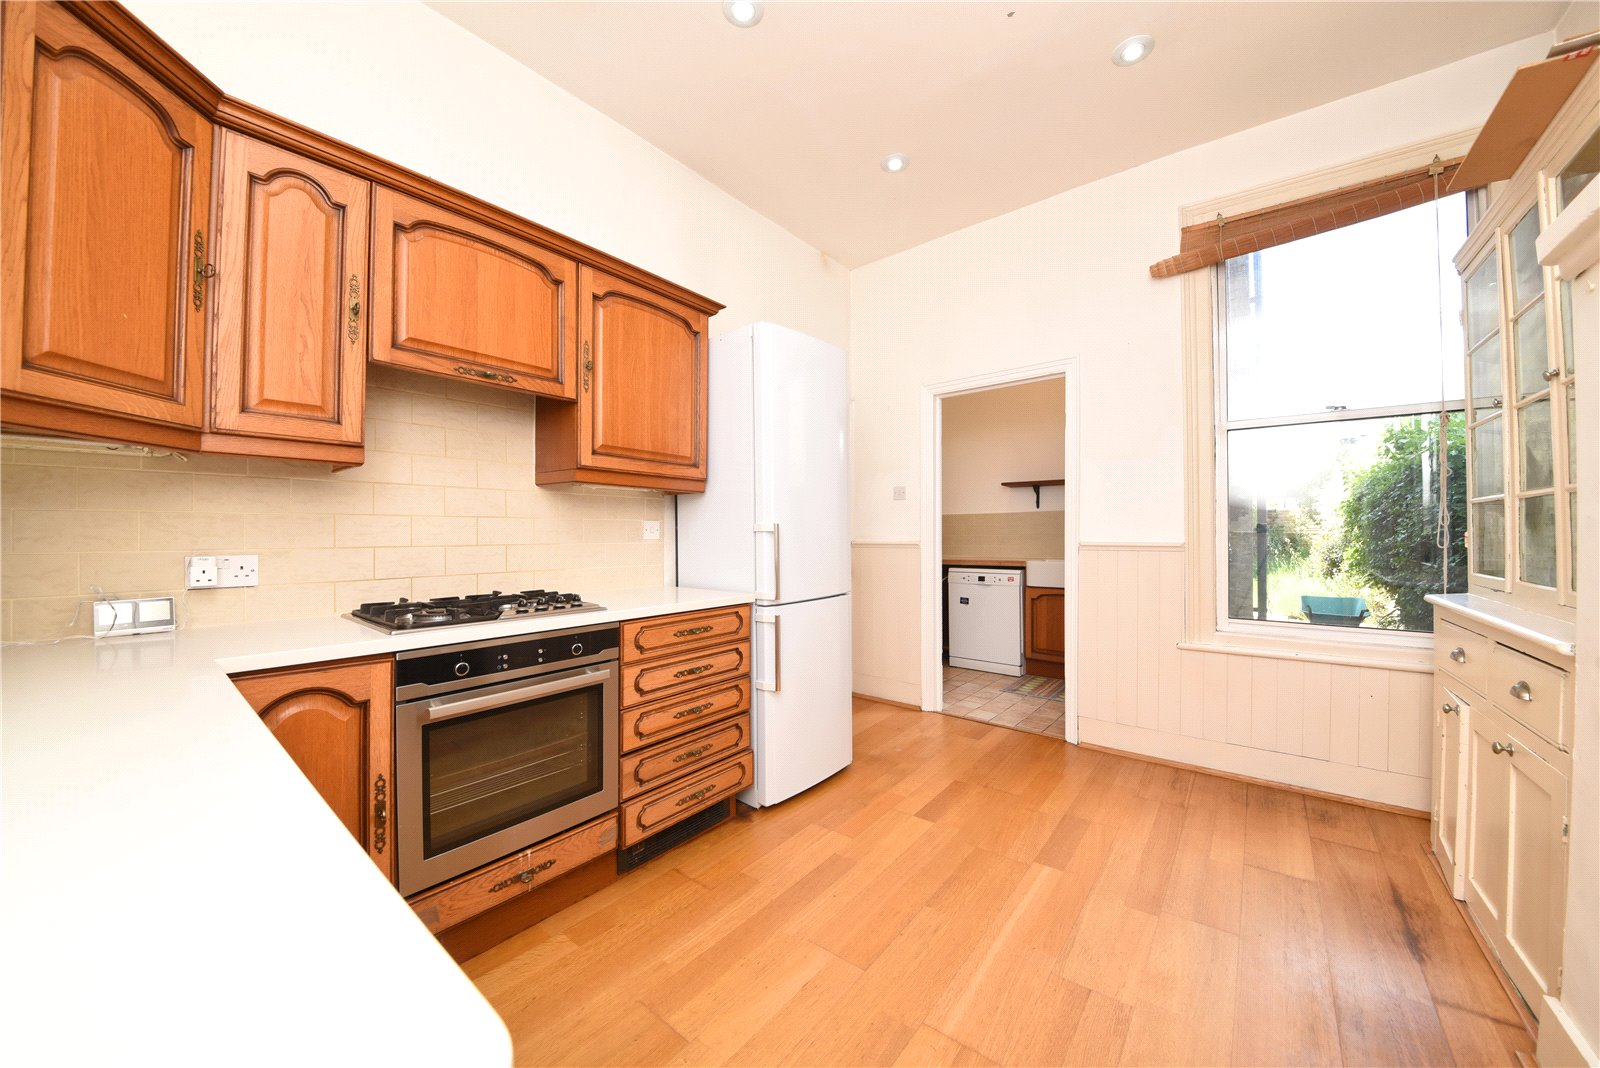 4 bed house for sale in Finchley, N3 2AR  - Property Image 3